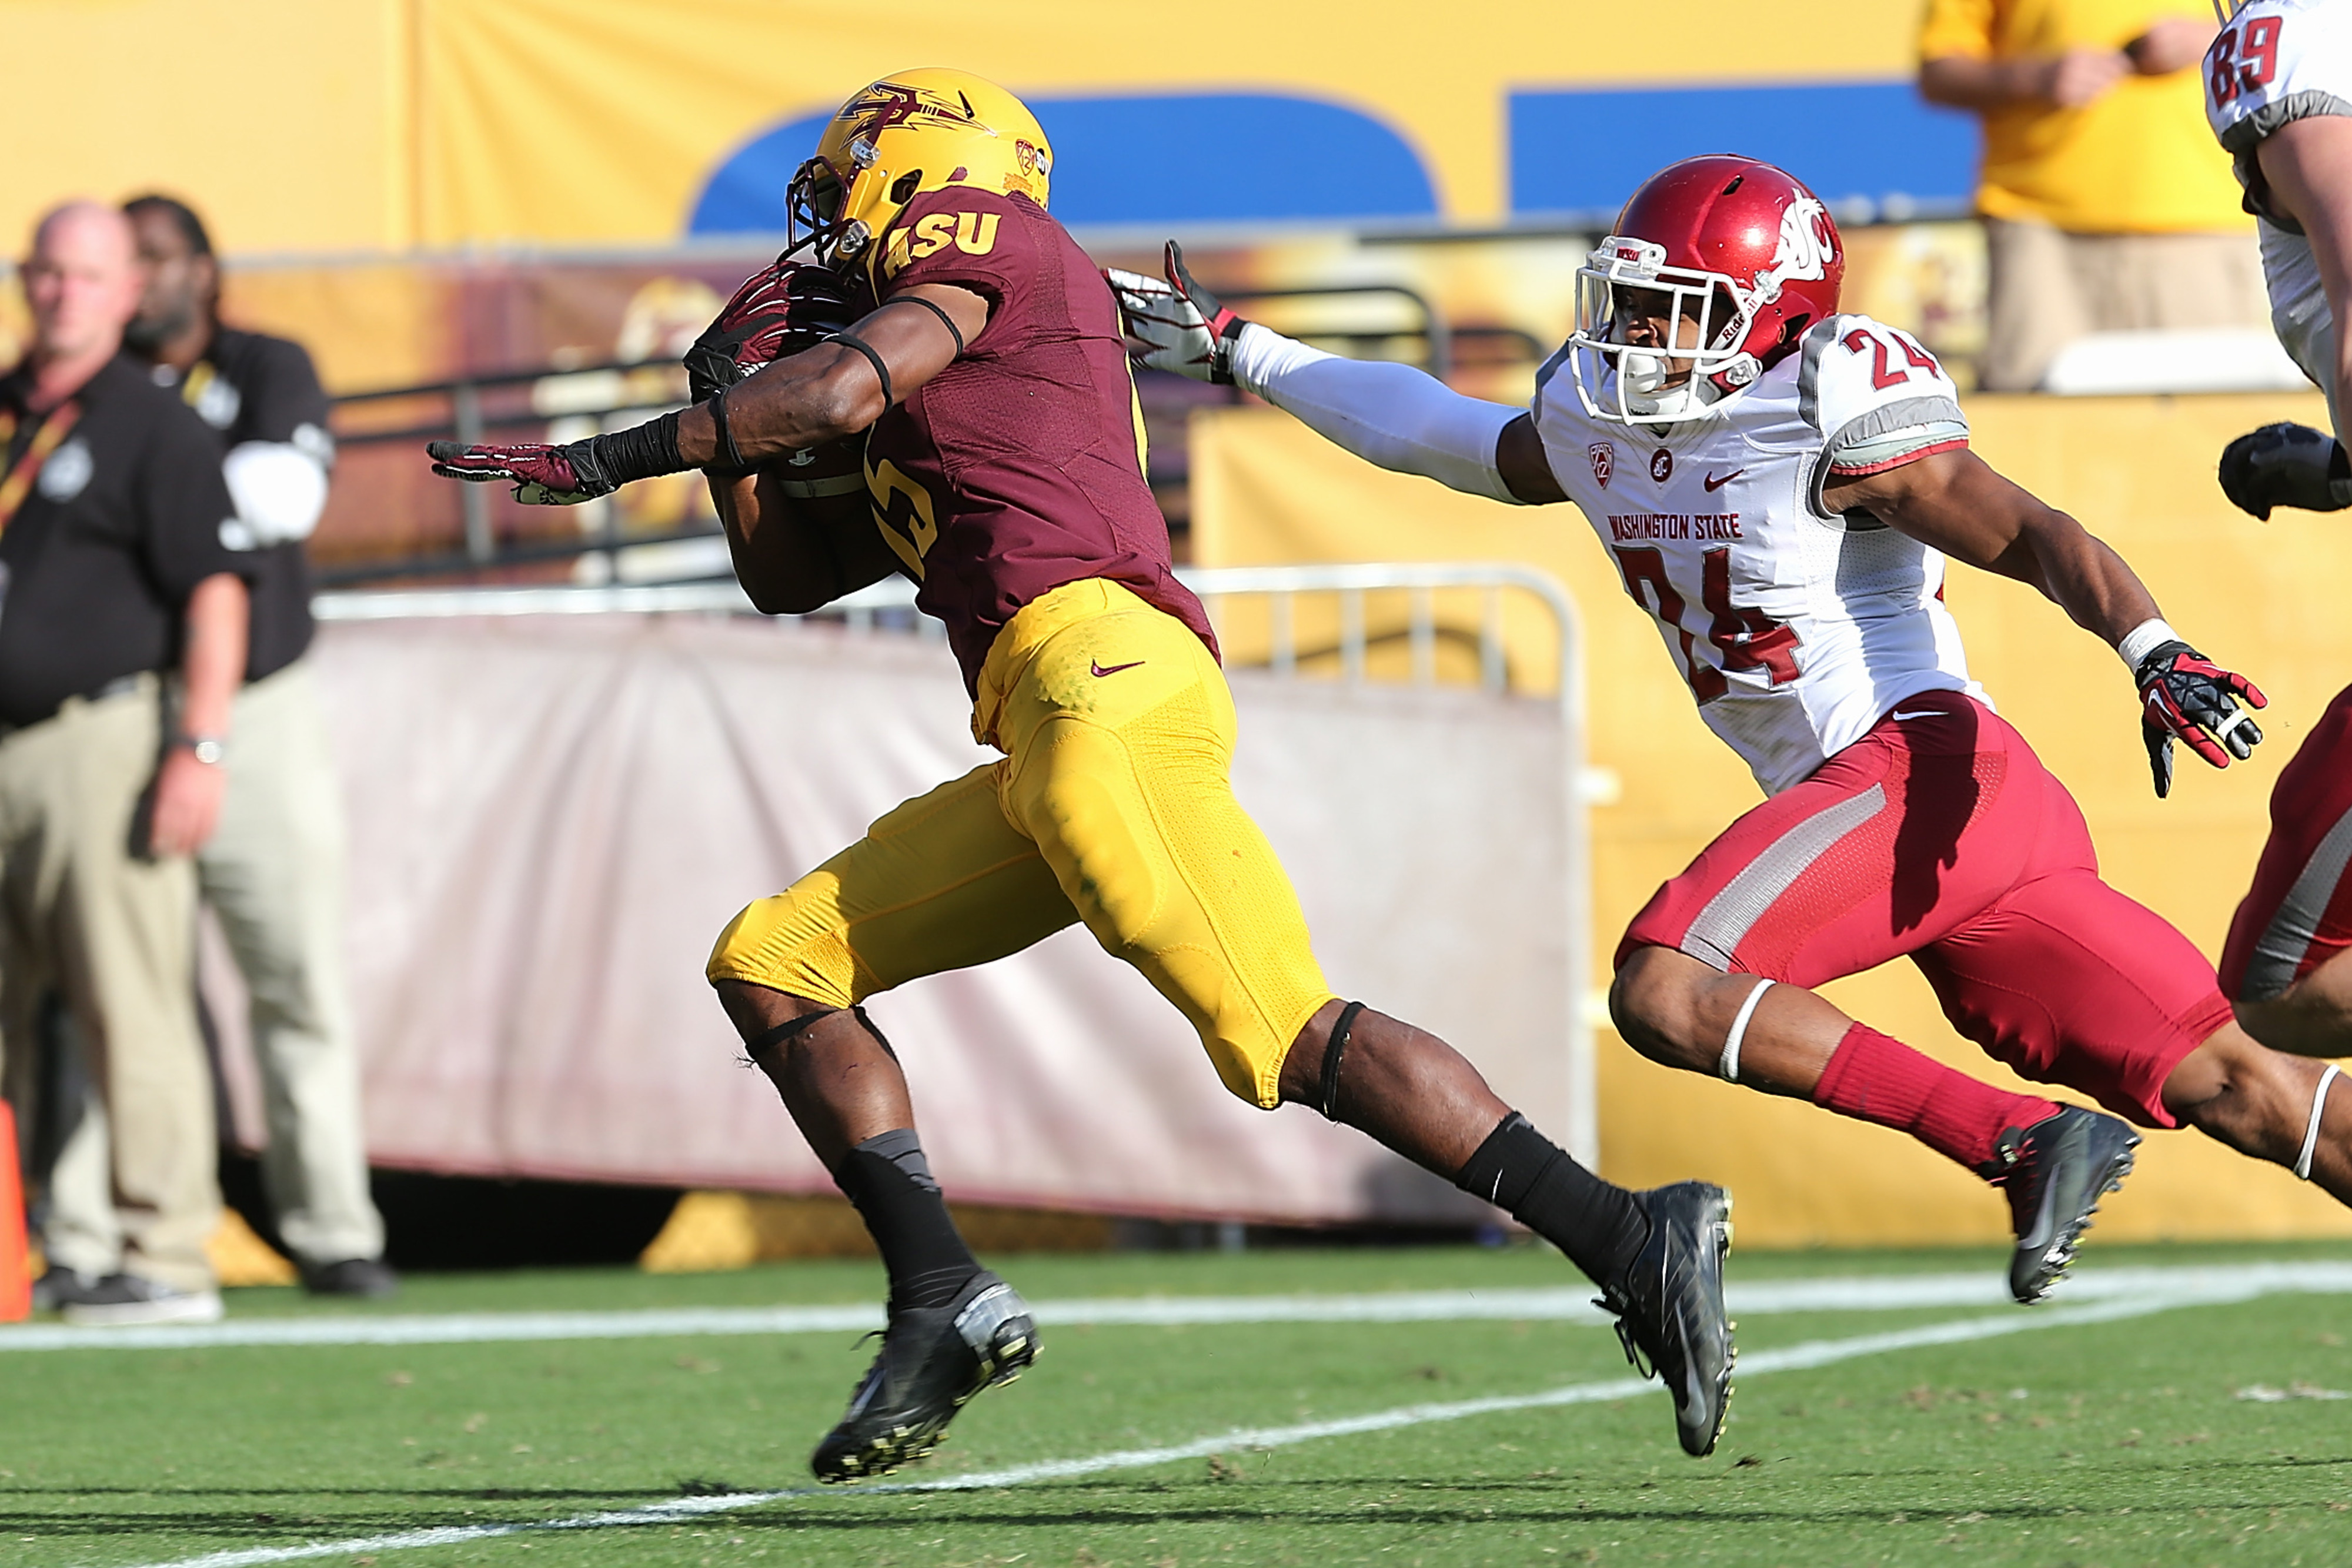 Rashad Ross and the Sun Devils ran right past the Washington State Cougars